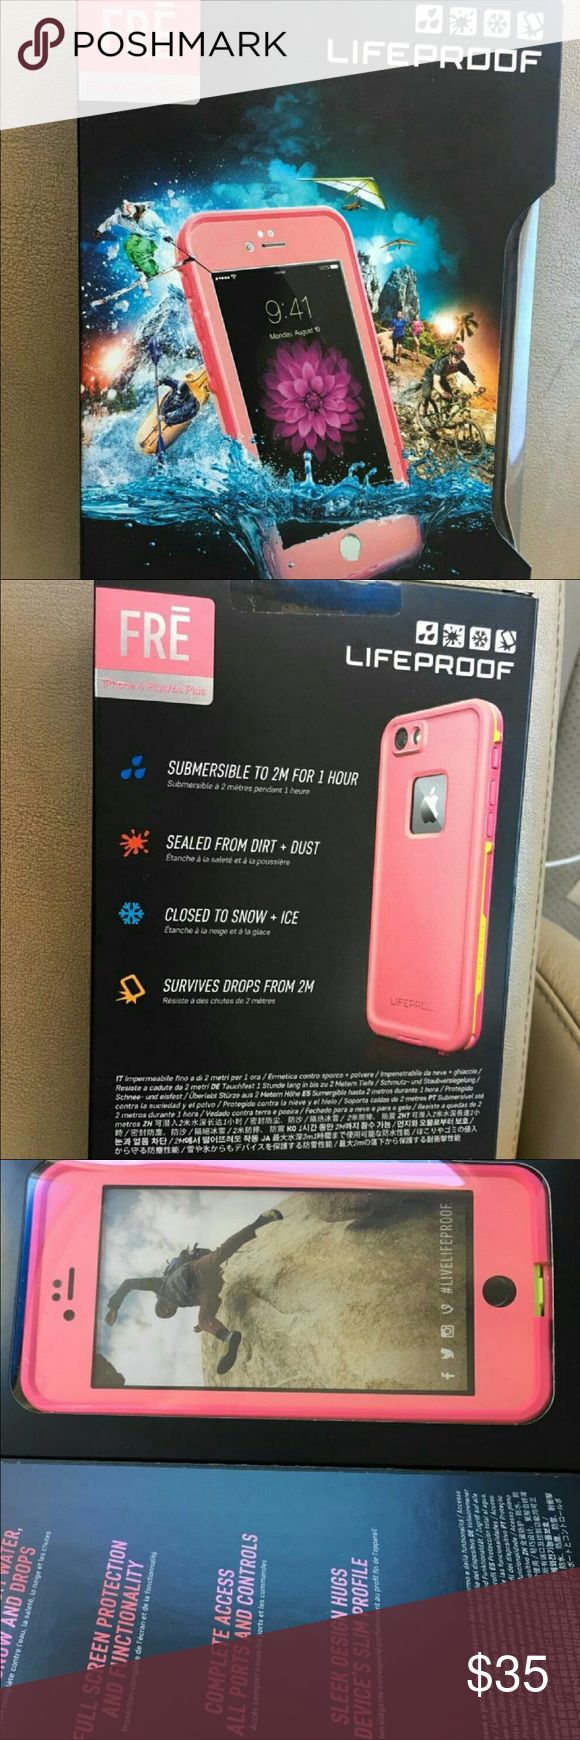 Lifeproof Fre Case IPhone 6plus/6s plus- Pink Lifeproof Waterproof case iPhone 6 Plus/ 6s Plus pink  Brand new 100% Authentic  Comes with 1yr warranty LifeProof Accessories Phone Cases